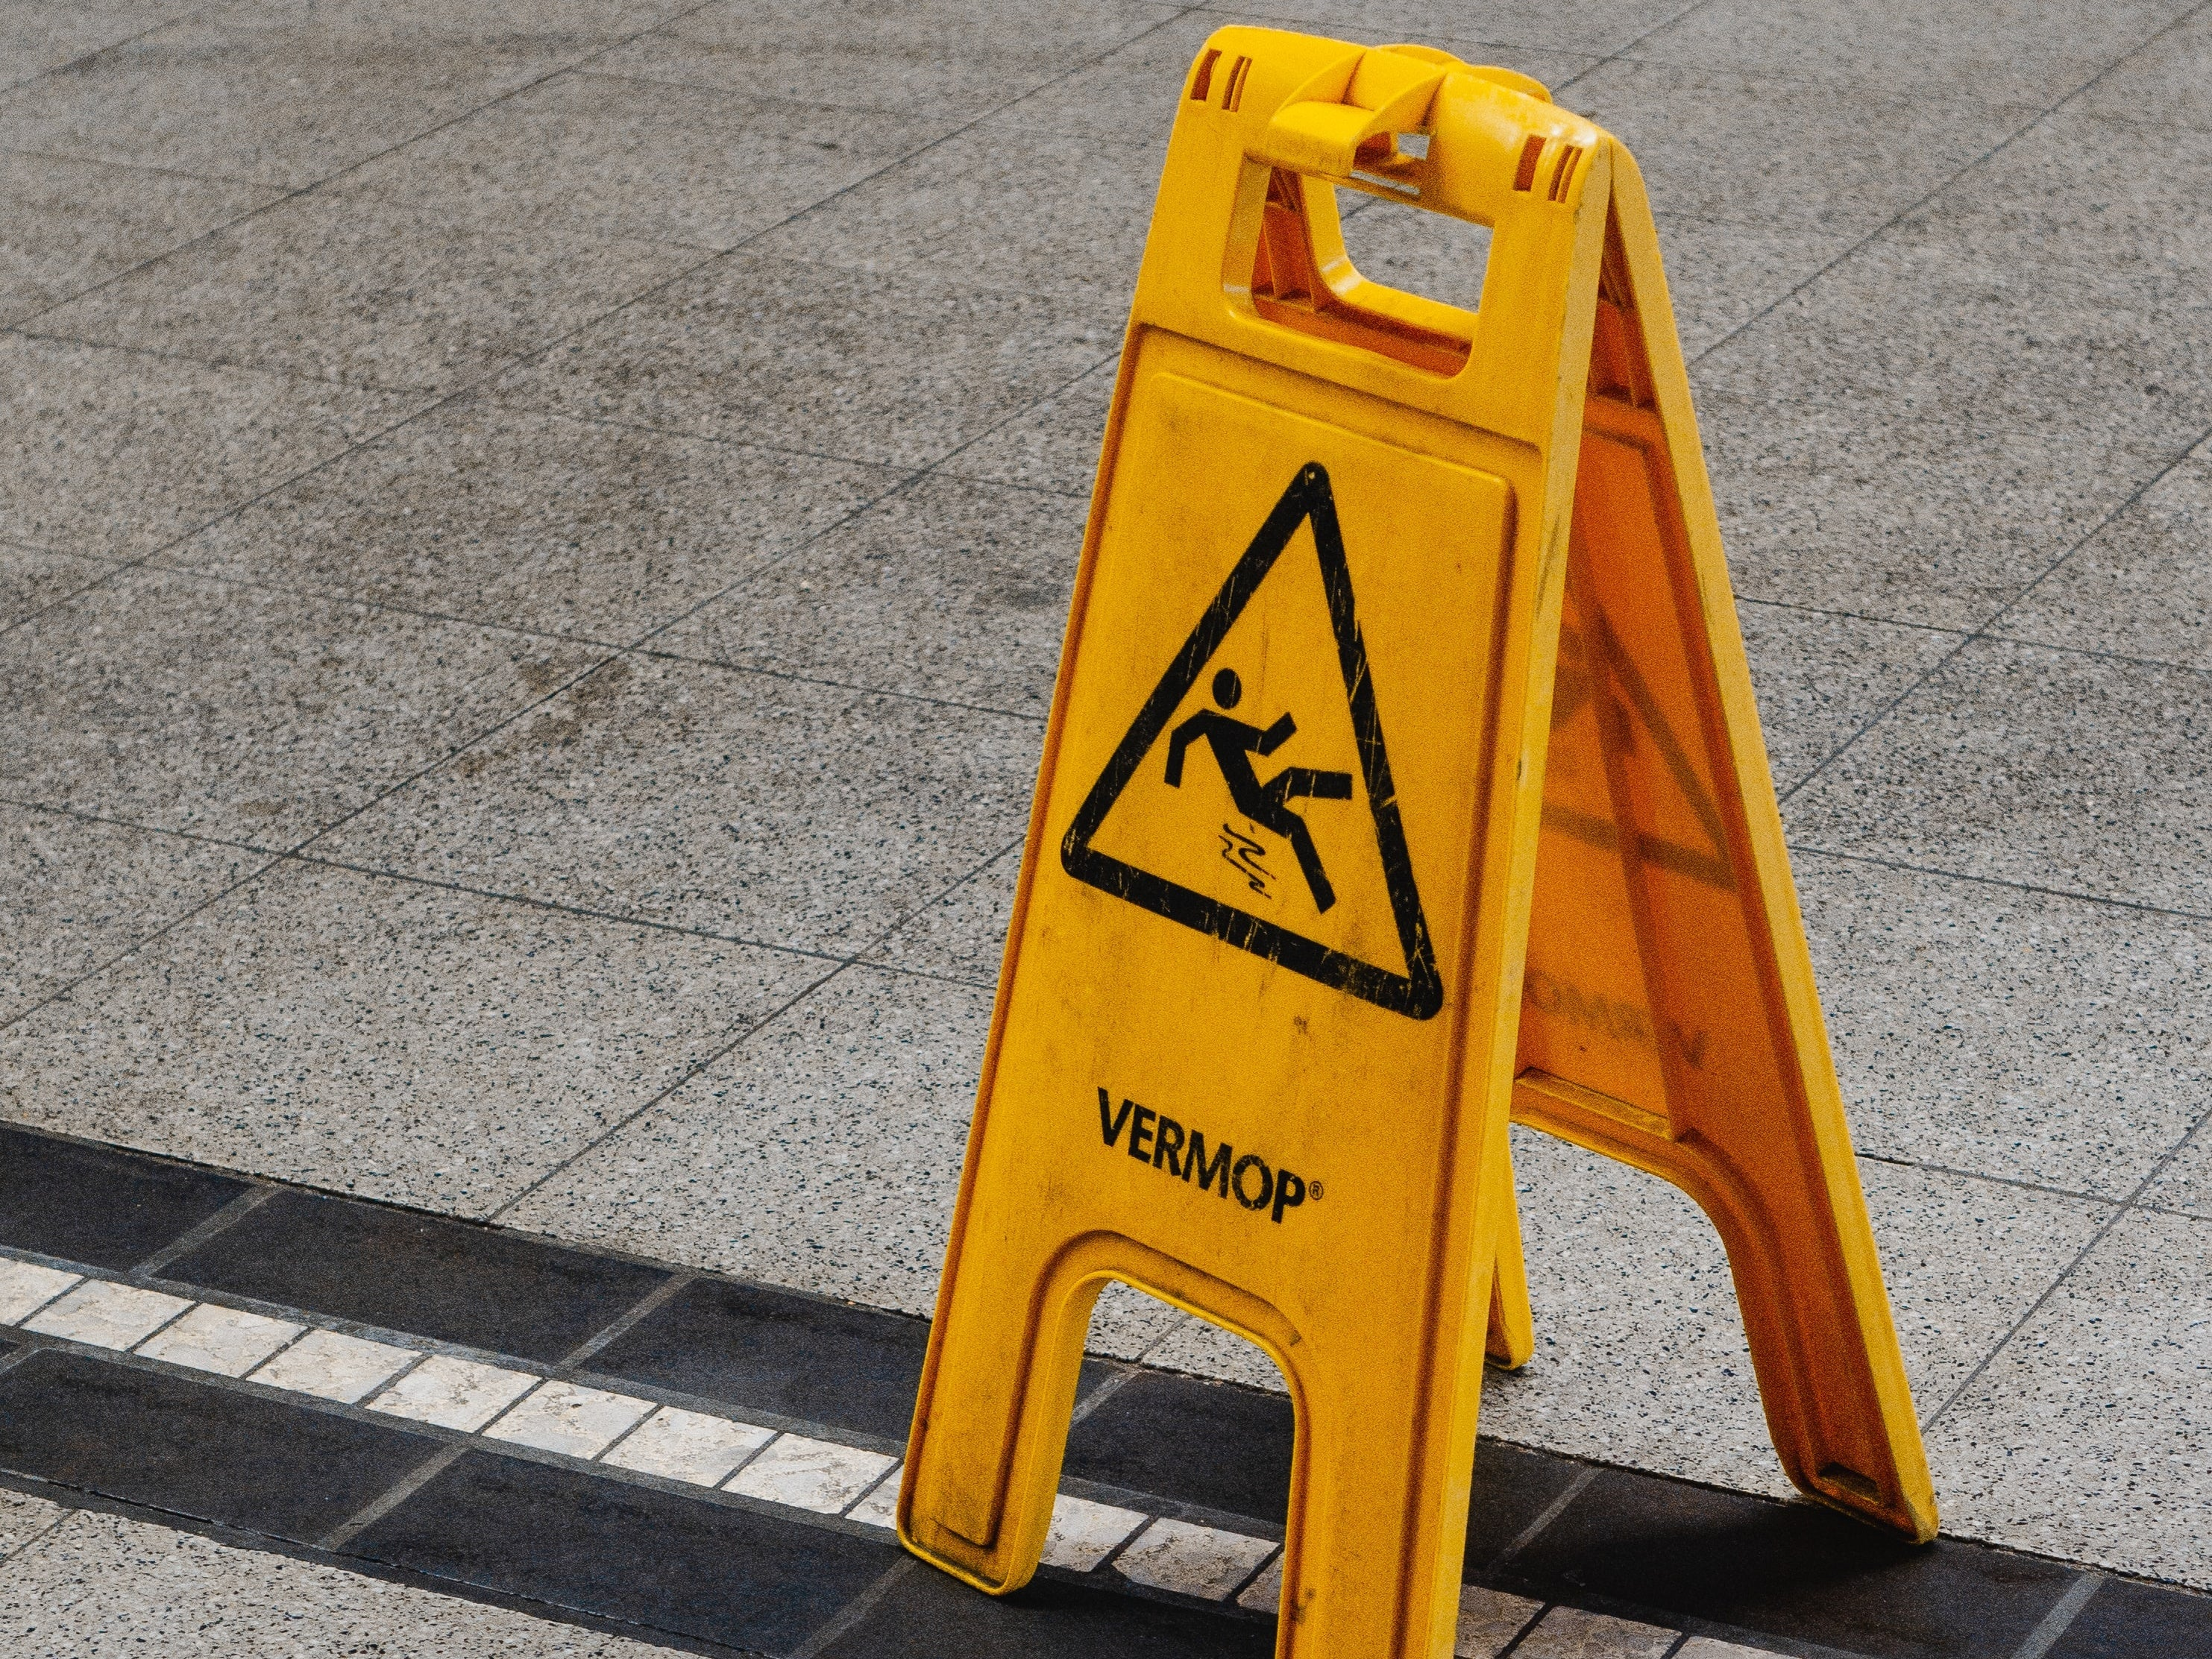 Slippery business: A slip during a work trip not compensable, says Federal Court